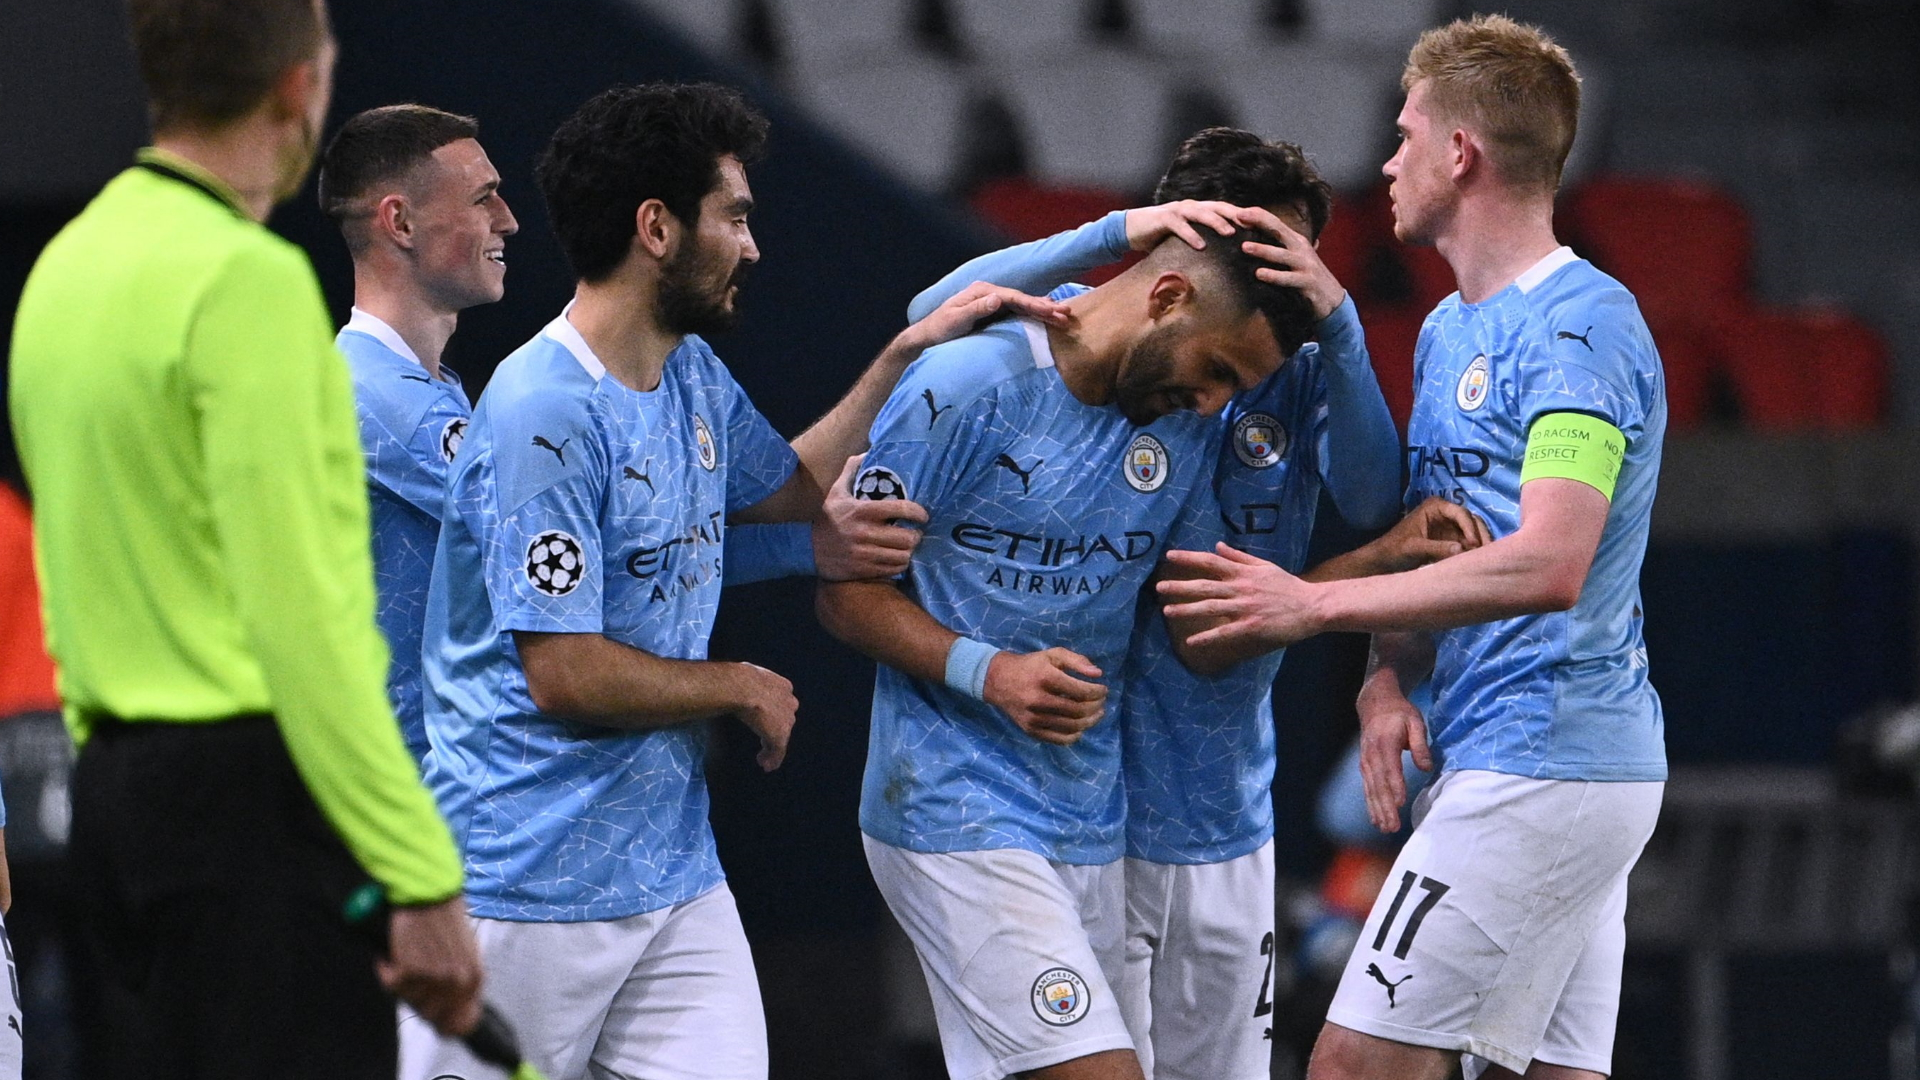 UEFA Champions League: How to watch Manchester City vs PSG in India – TV, live stream   Goal.com